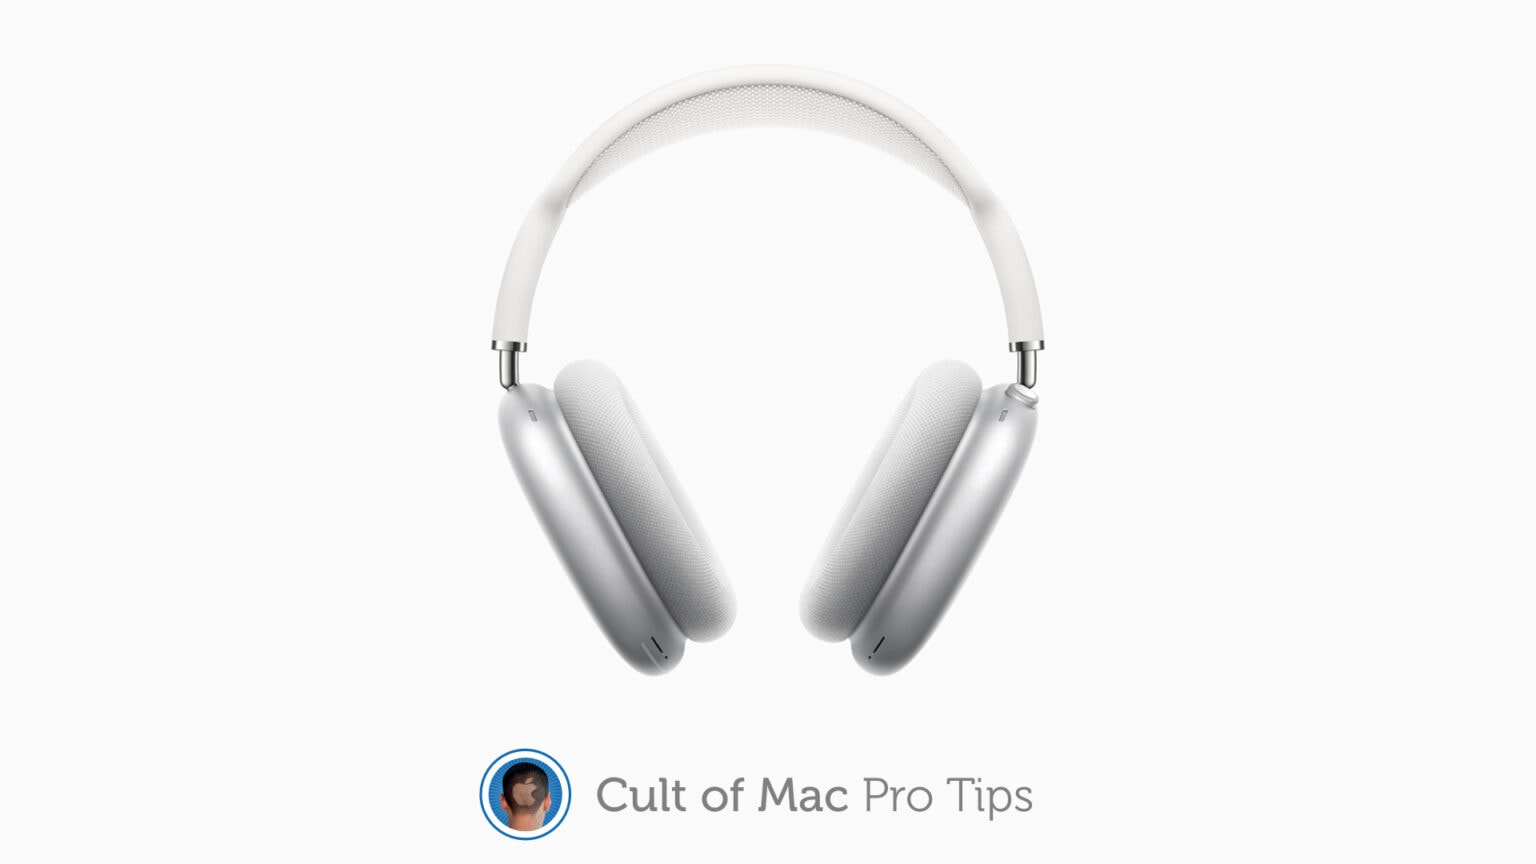 Use AirPods with devices that don't have Bluetooth